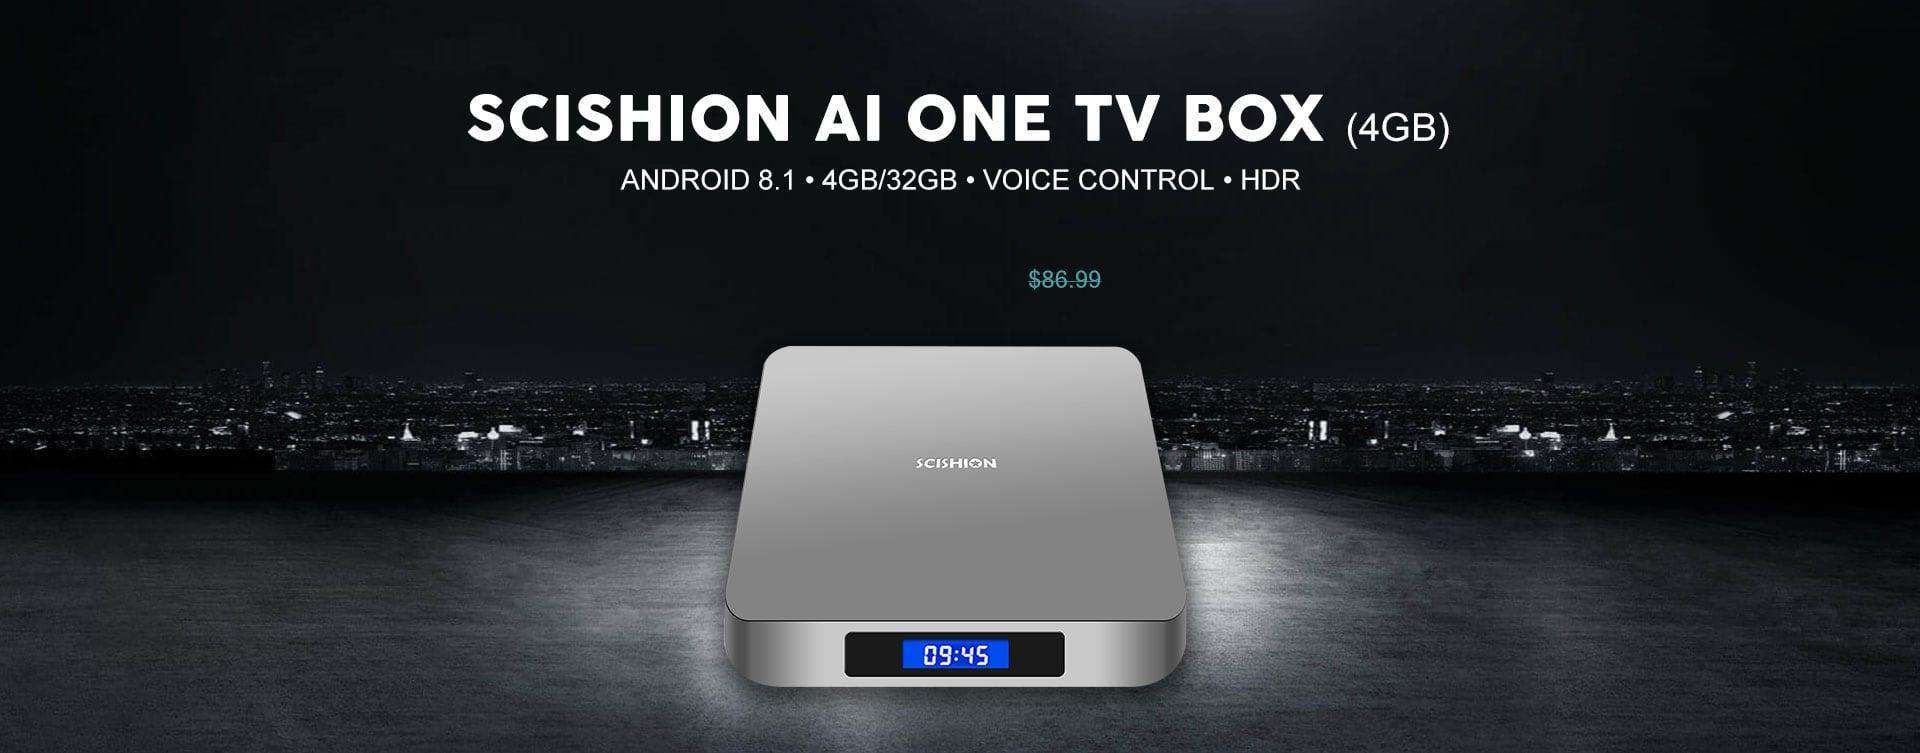 Scishion AI One TV Box